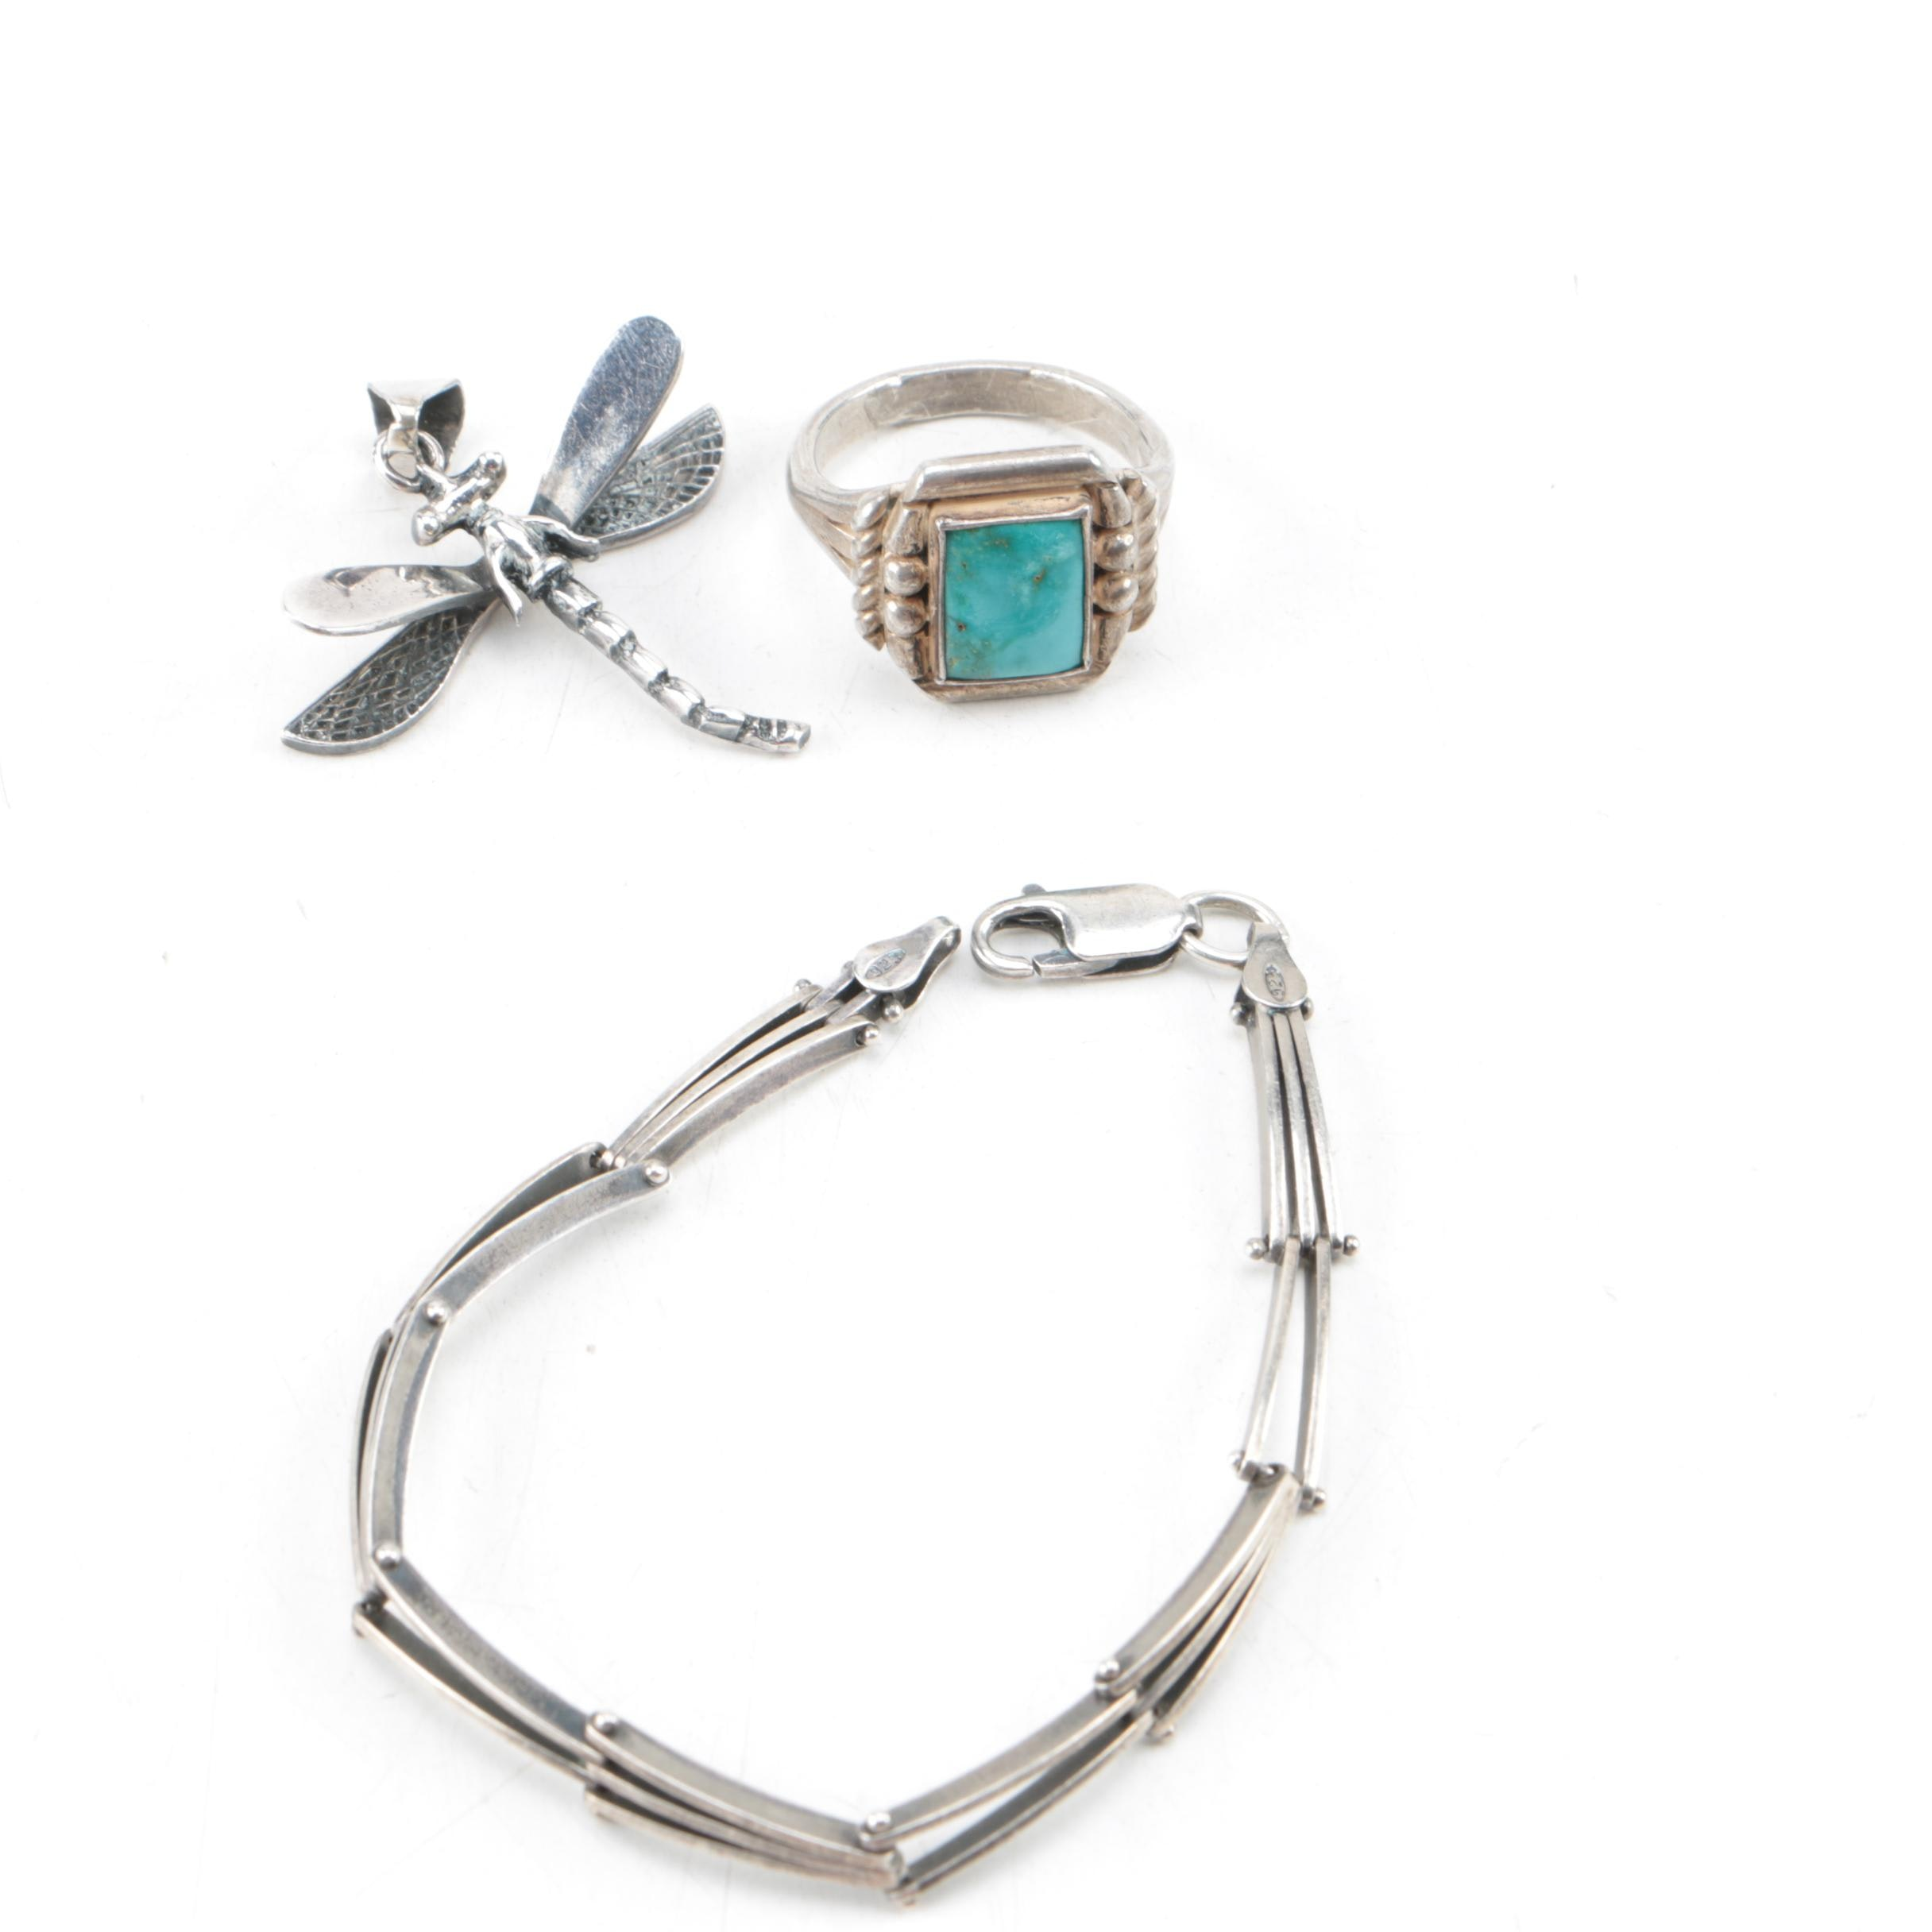 Selection of Sterling Silver Jewelry Including Turquoise